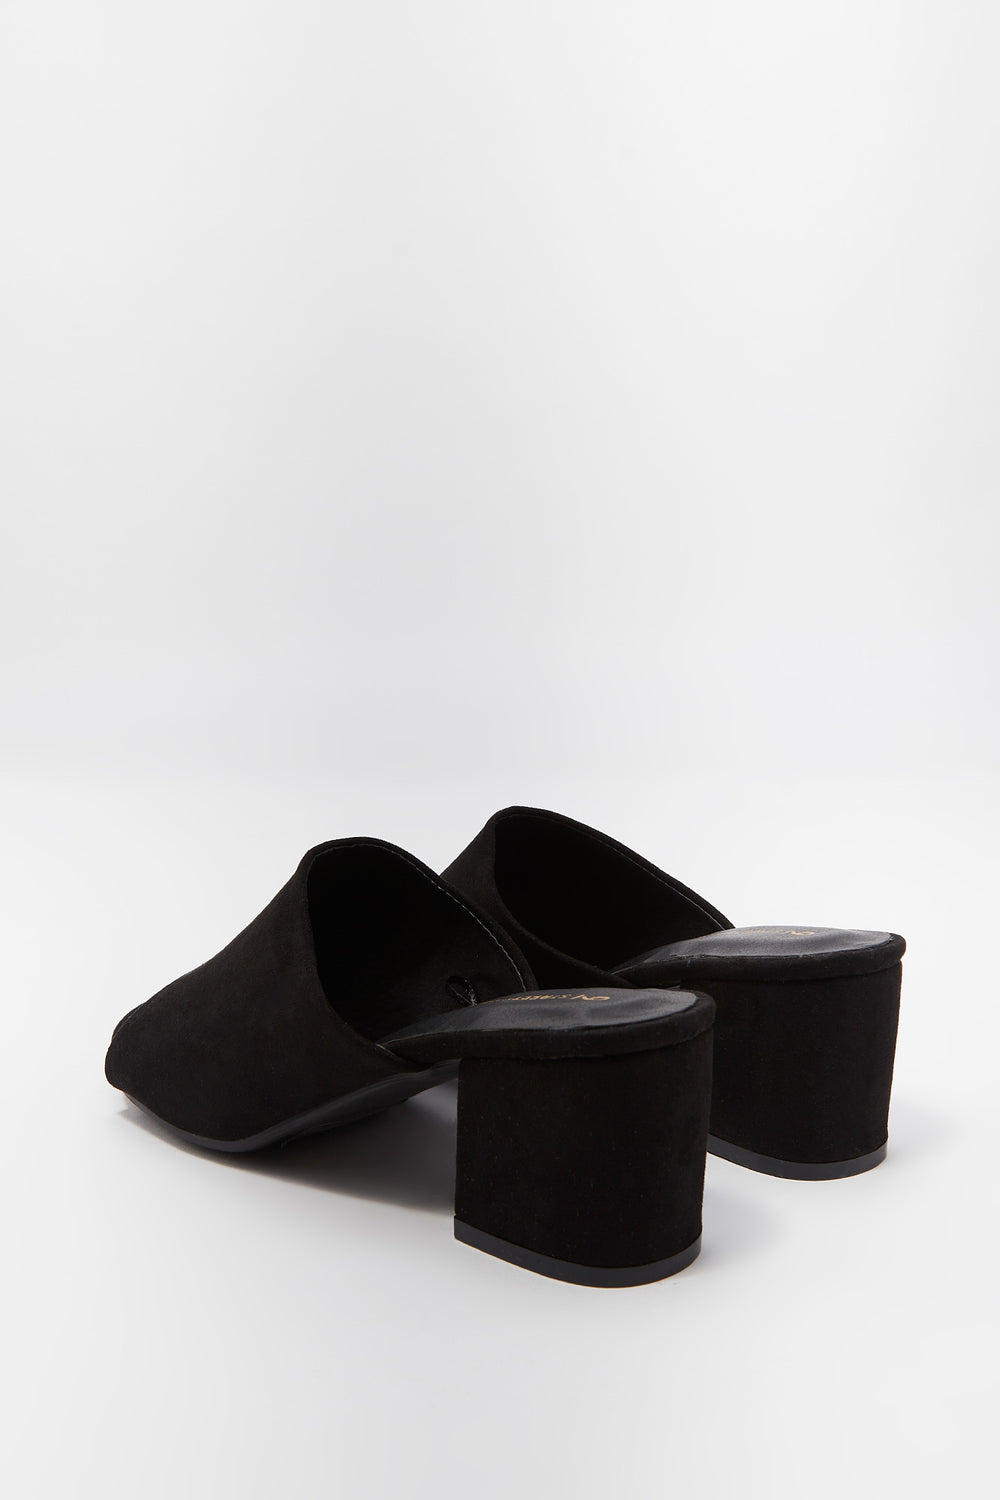 Open Toe Low Block Heel Mule Black